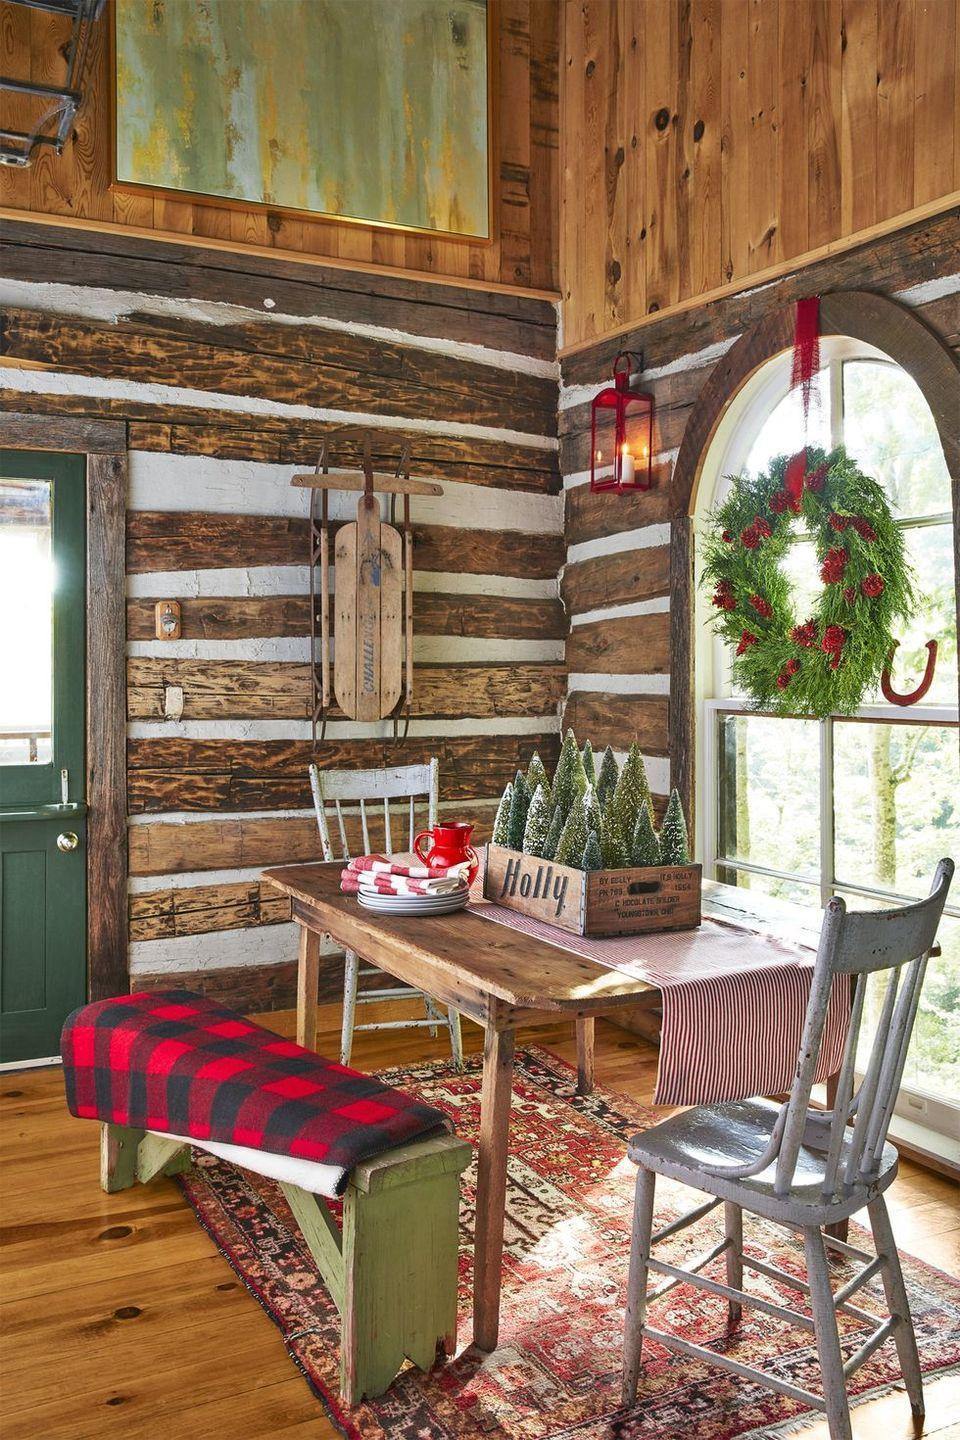 <p>Warm up your home with tons of rustic charm, from buffalo plaid blankets to snow-covered tabletop trees. Round up a dozen or so bottle brush trees in an antique wooden box for an easy centerpiece. </p>